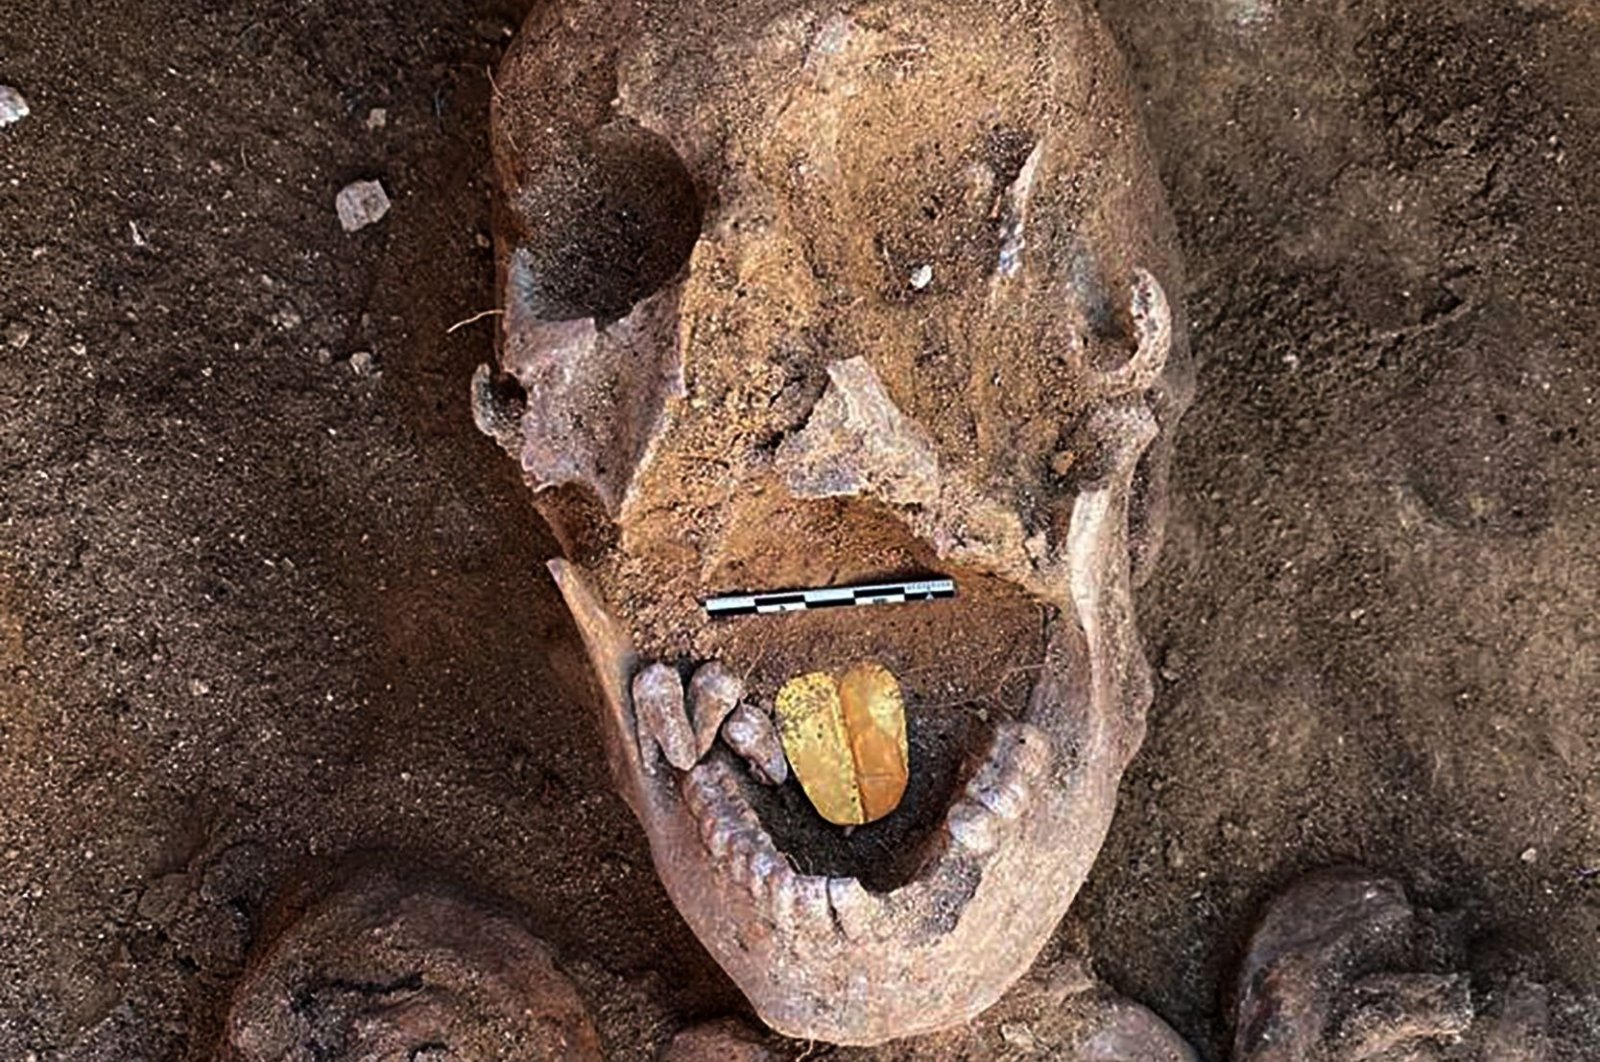 A 2,000-year-old mummy with a gold foil amulet inside his mouth is seen at the Taposiris Magna Temple in western Alexandria, Egypt, Jan. 29, 2021. (Egyptian Ministry of Antiquities via AFP)